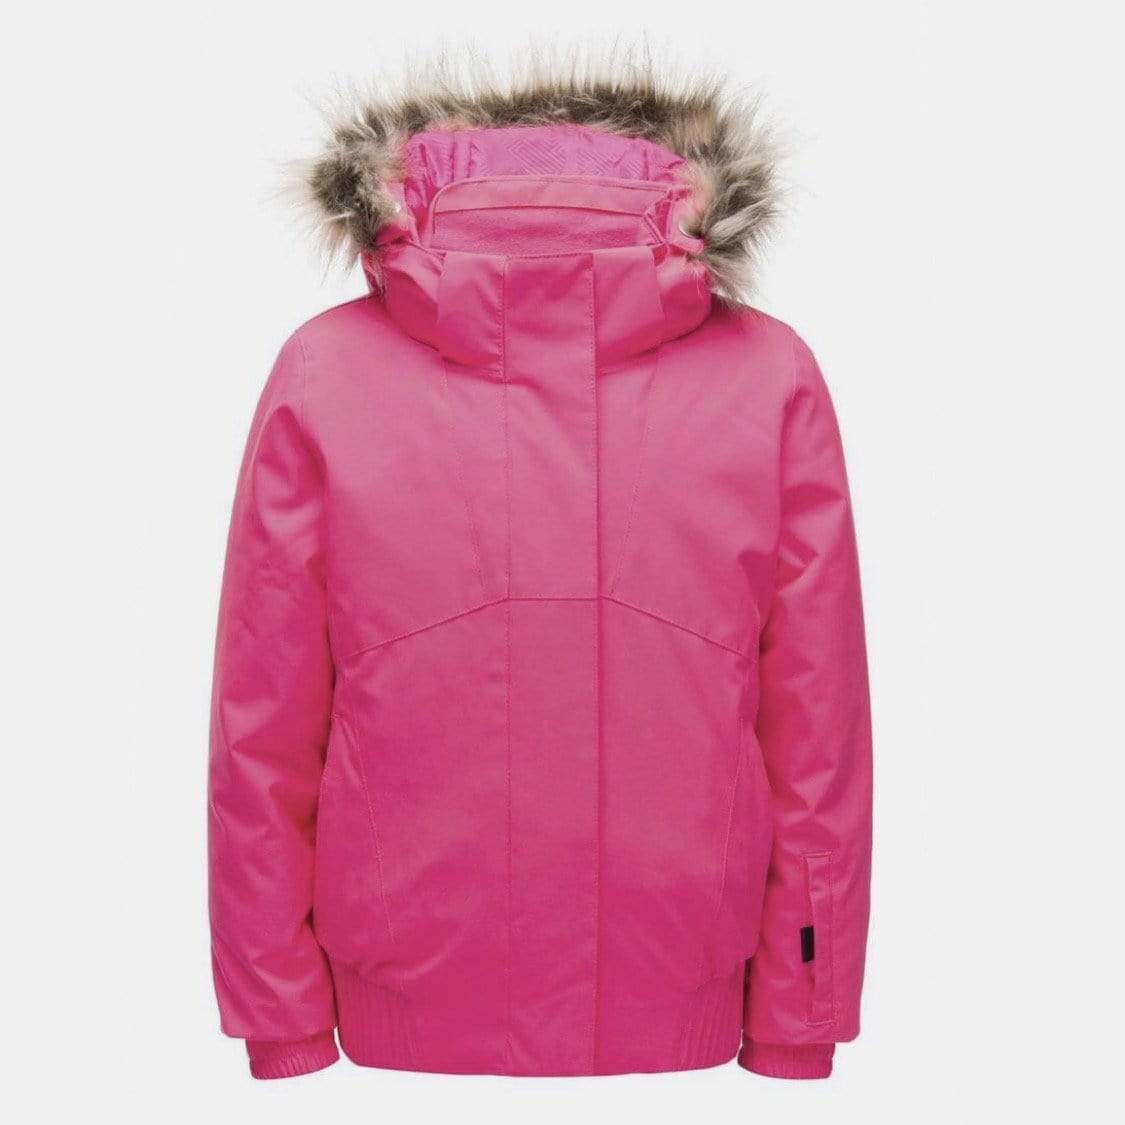 Spyder - Girls Bryte Bubblegum Pink Overflow Lola Jacket Winter Jacket Spyder 2 Years